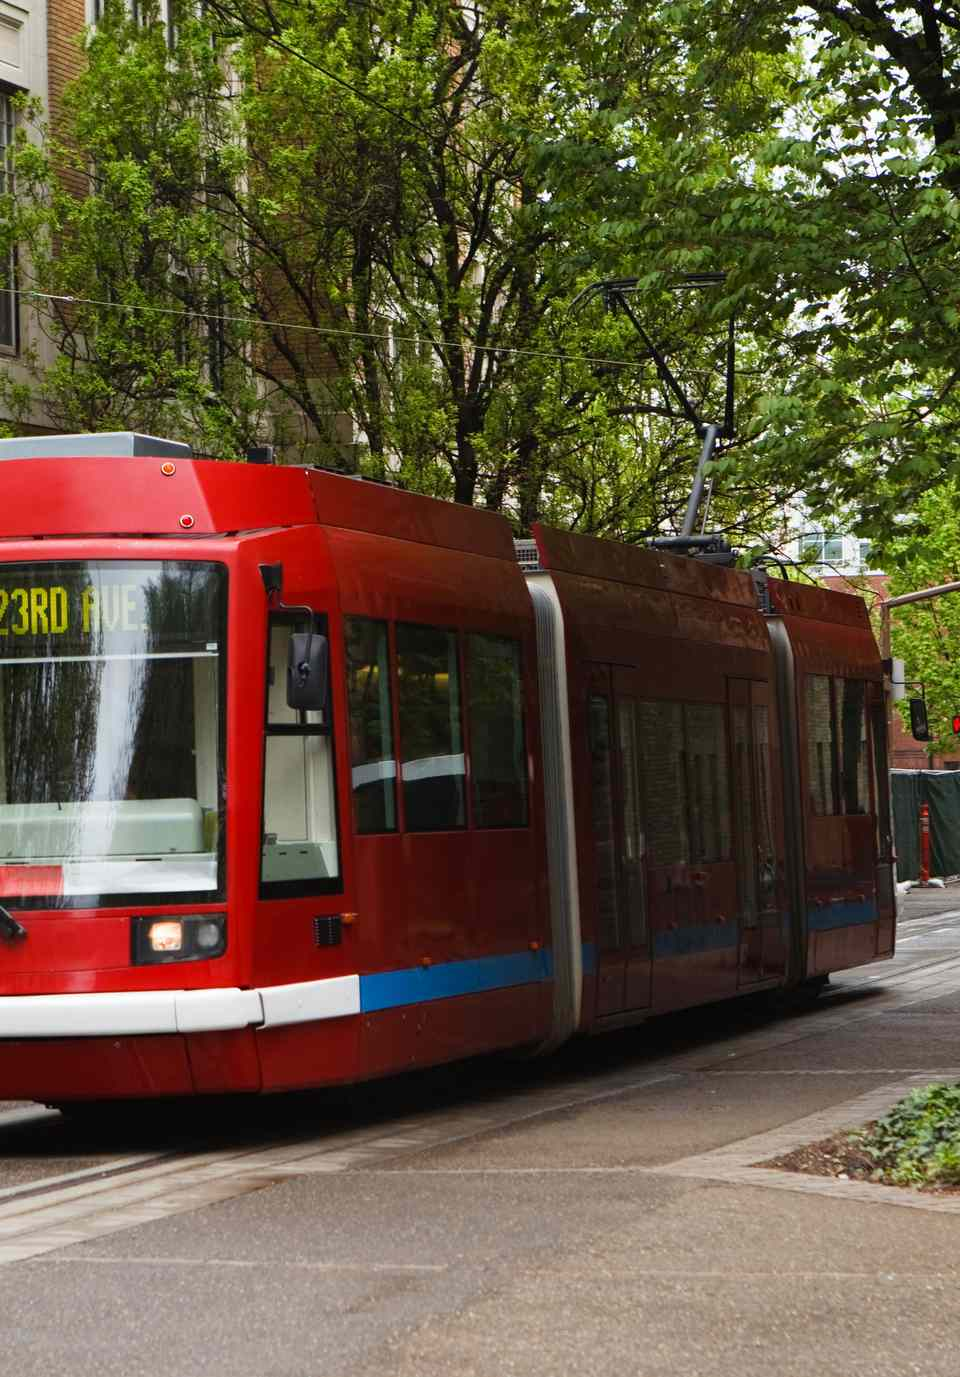 Red Portland Streetcar going through town